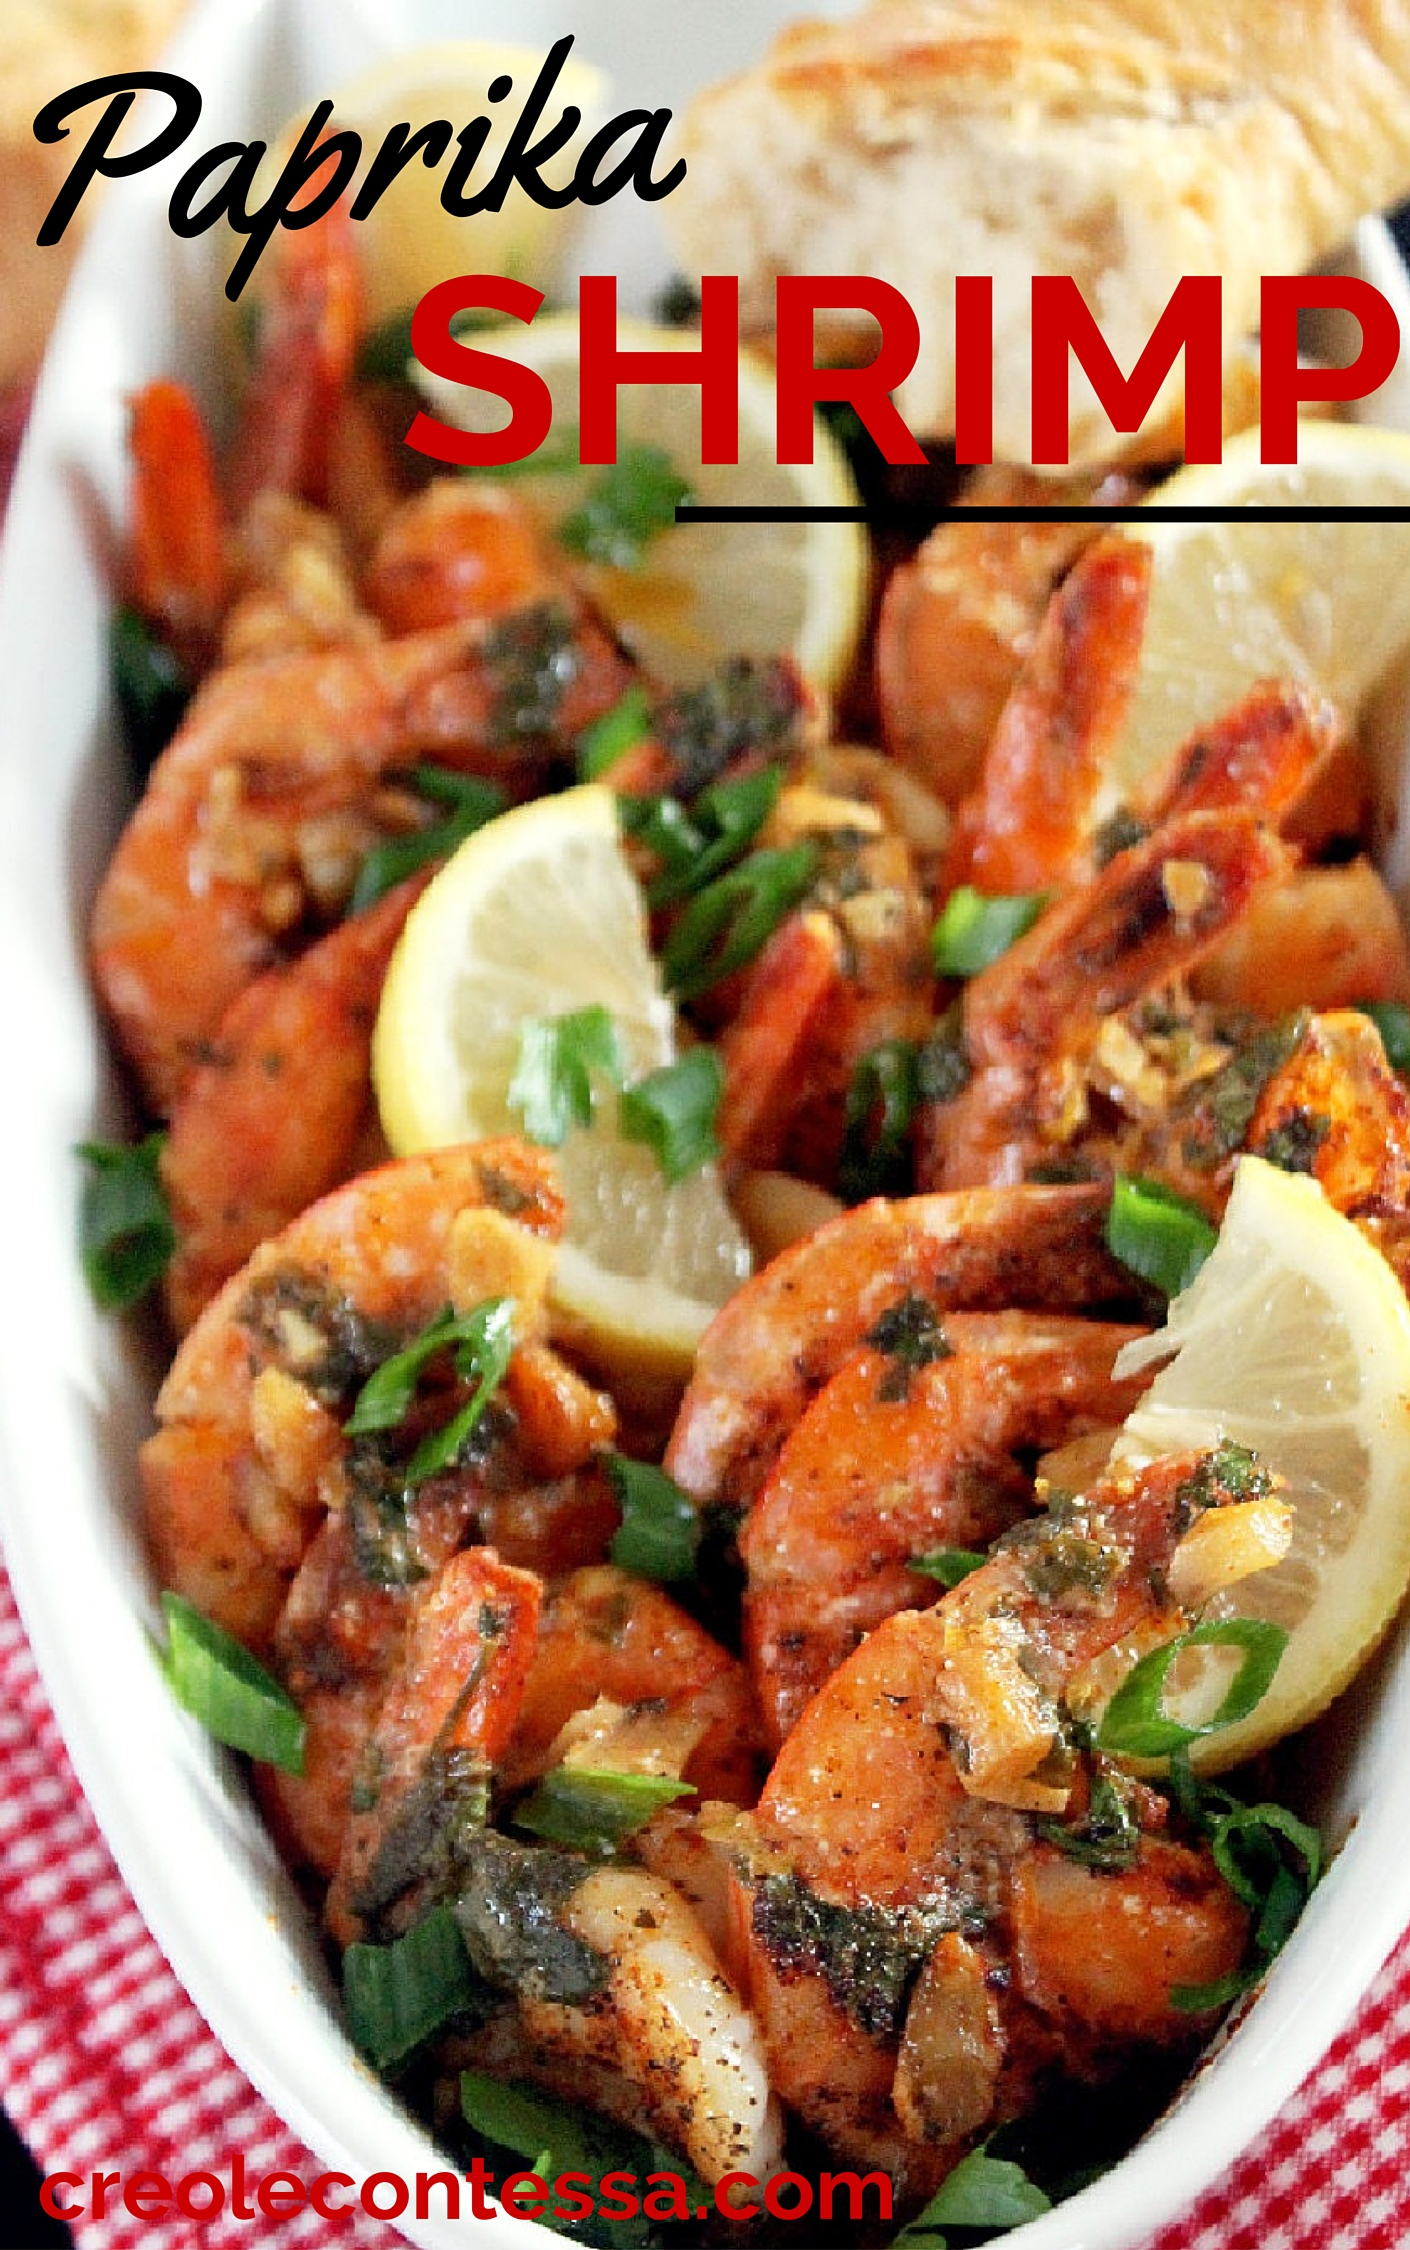 Paprika Shrimp with Roasted Garlic-Creole Contessa